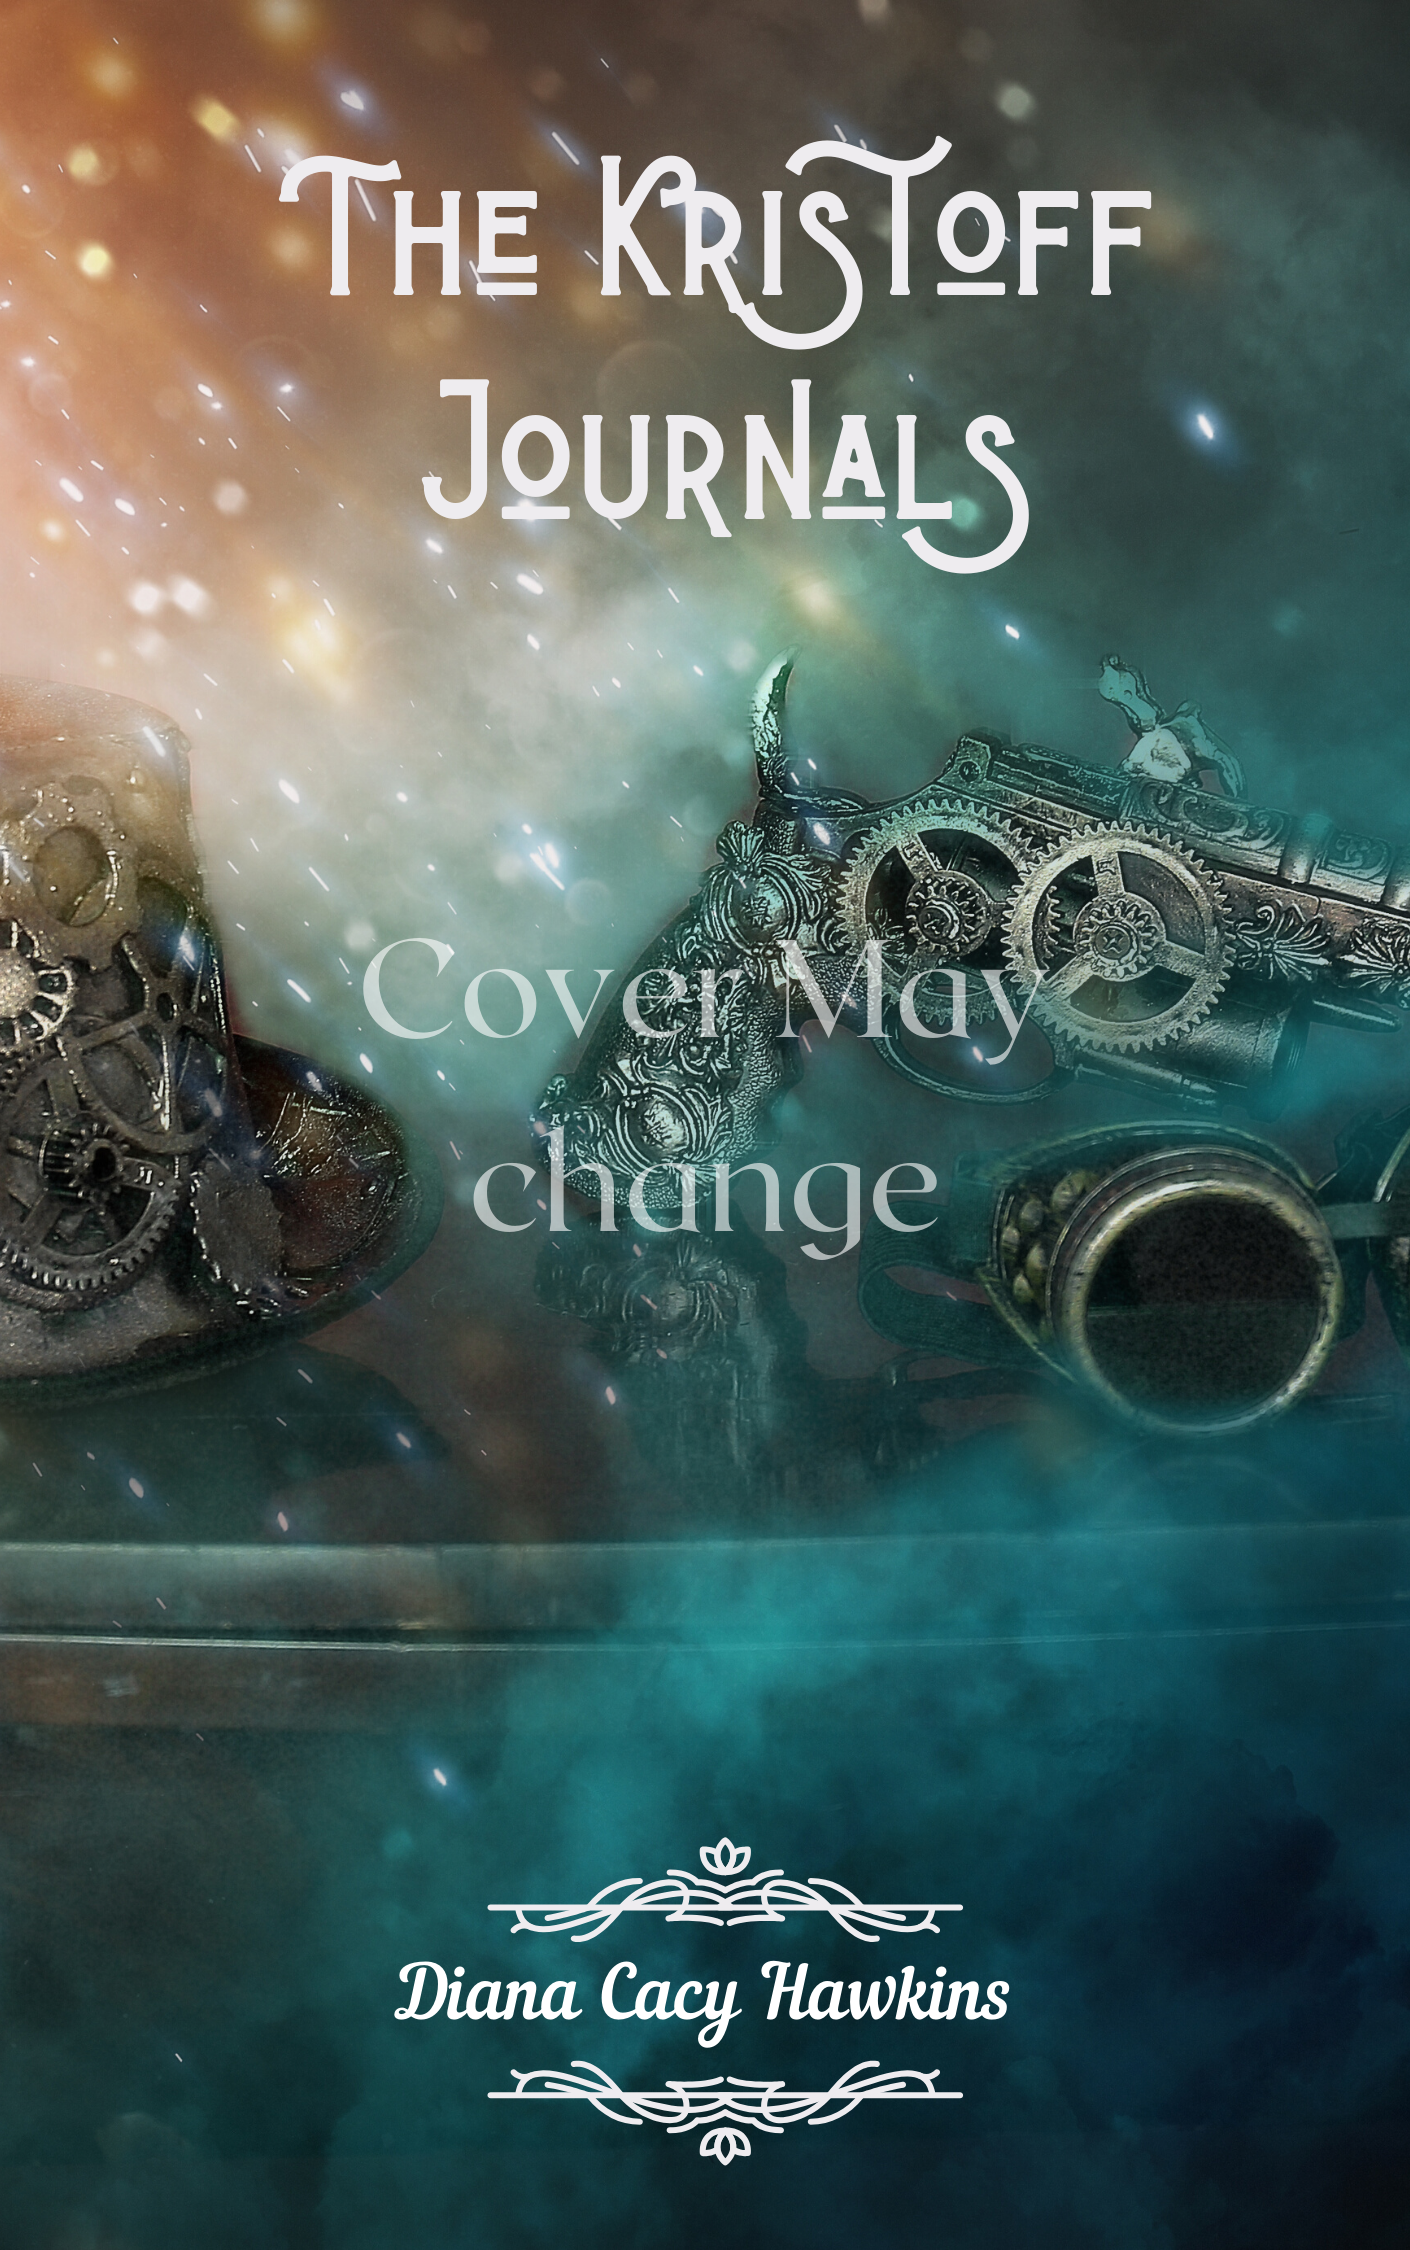 The Kristoff Journals temporary